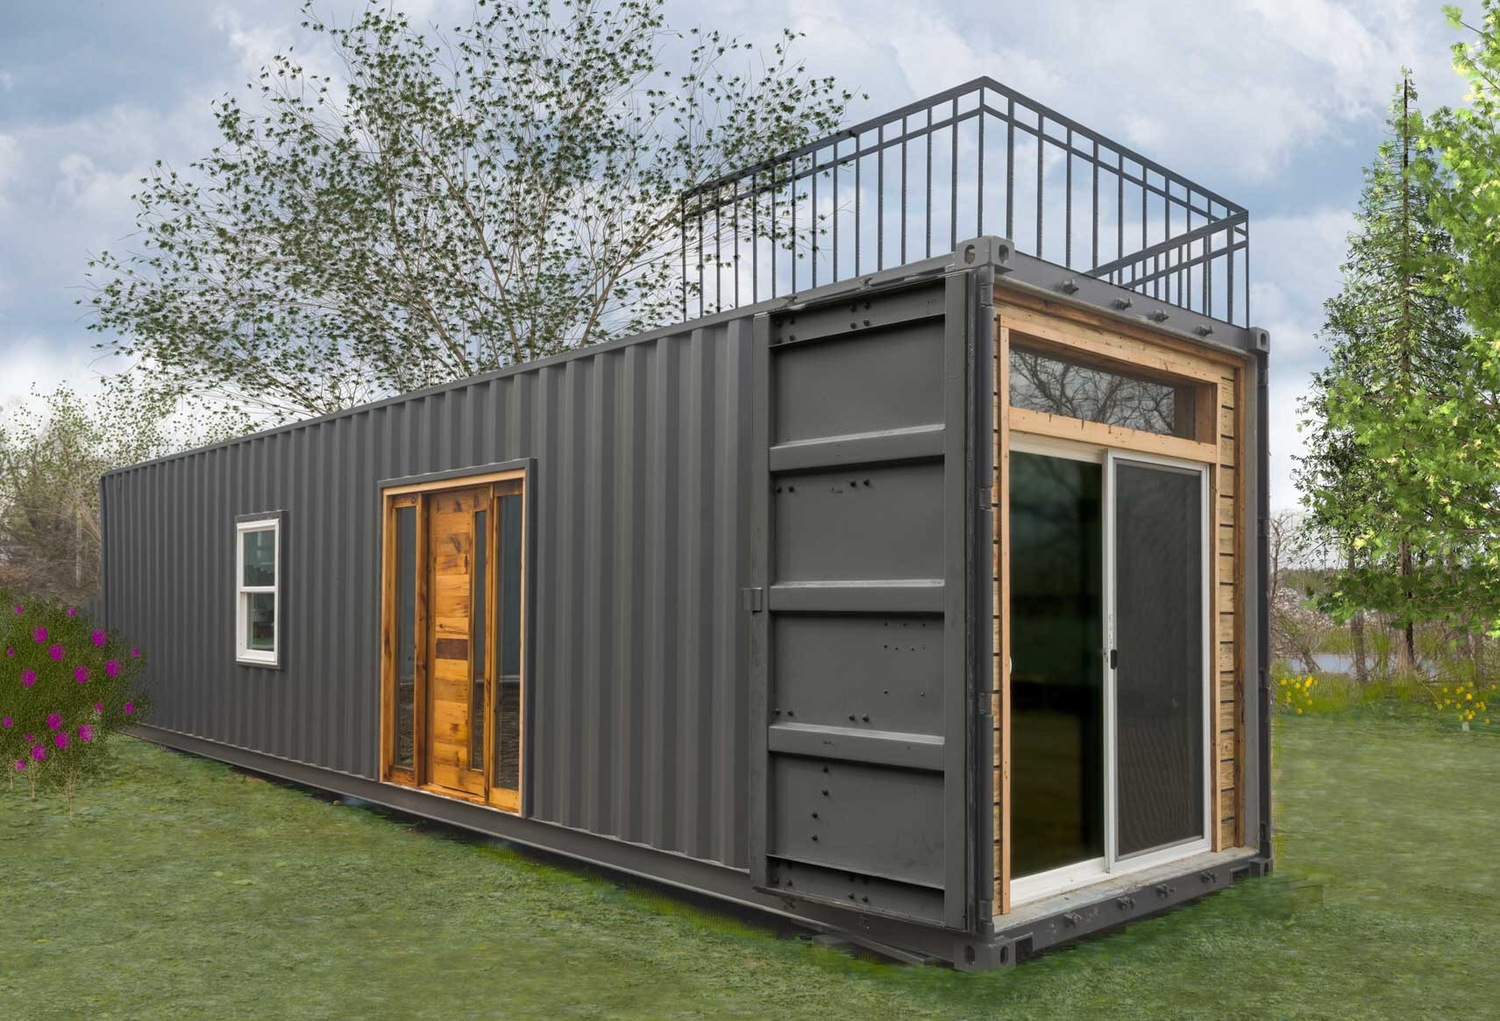 Best Kitchen Gallery: Tiny House Town Freedom From Minimalist Homes 300 Sq Ft of 40 Foot Container Homes on rachelxblog.com